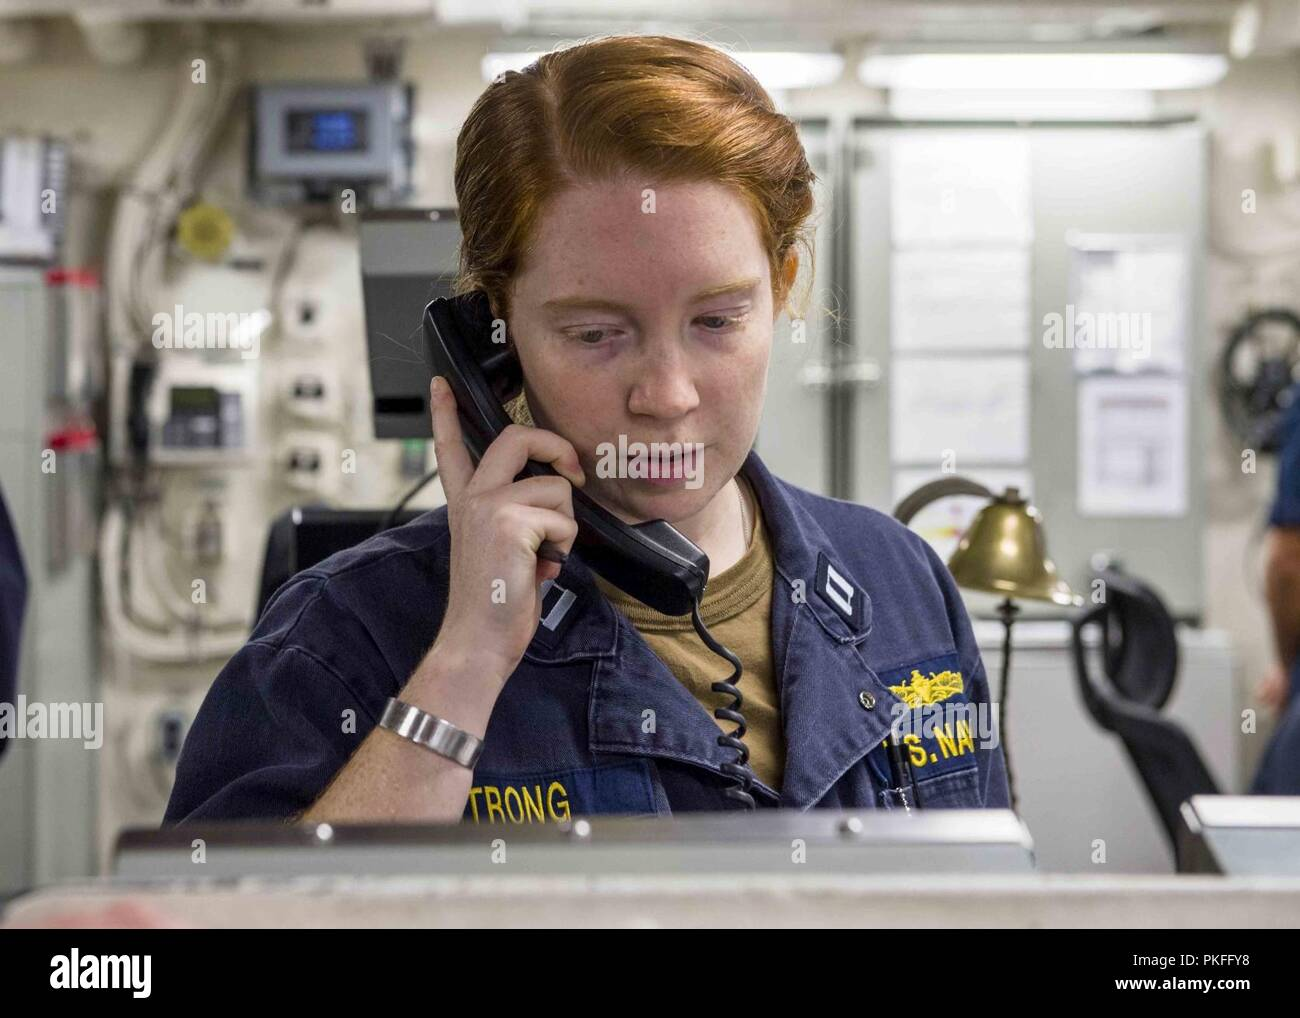 PACIFIC OCEAN (August 9, 2018) Lt. Emily Strong, from Millington, Md., stands engineering officer of the watch aboard San Antonio-class amphibious transport dock USS Anchorage (LPD 23) during a regularly scheduled deployment of the Essex Amphibious Ready Group (ARG) and 13th Marine Expeditionary Unit (MEU). The Essex ARG/MEU team is a strong and flexible force equipped and scalable to respond to any crisis ranging from humanitarian assistance and disaster relief to contingency operations. - Stock Image